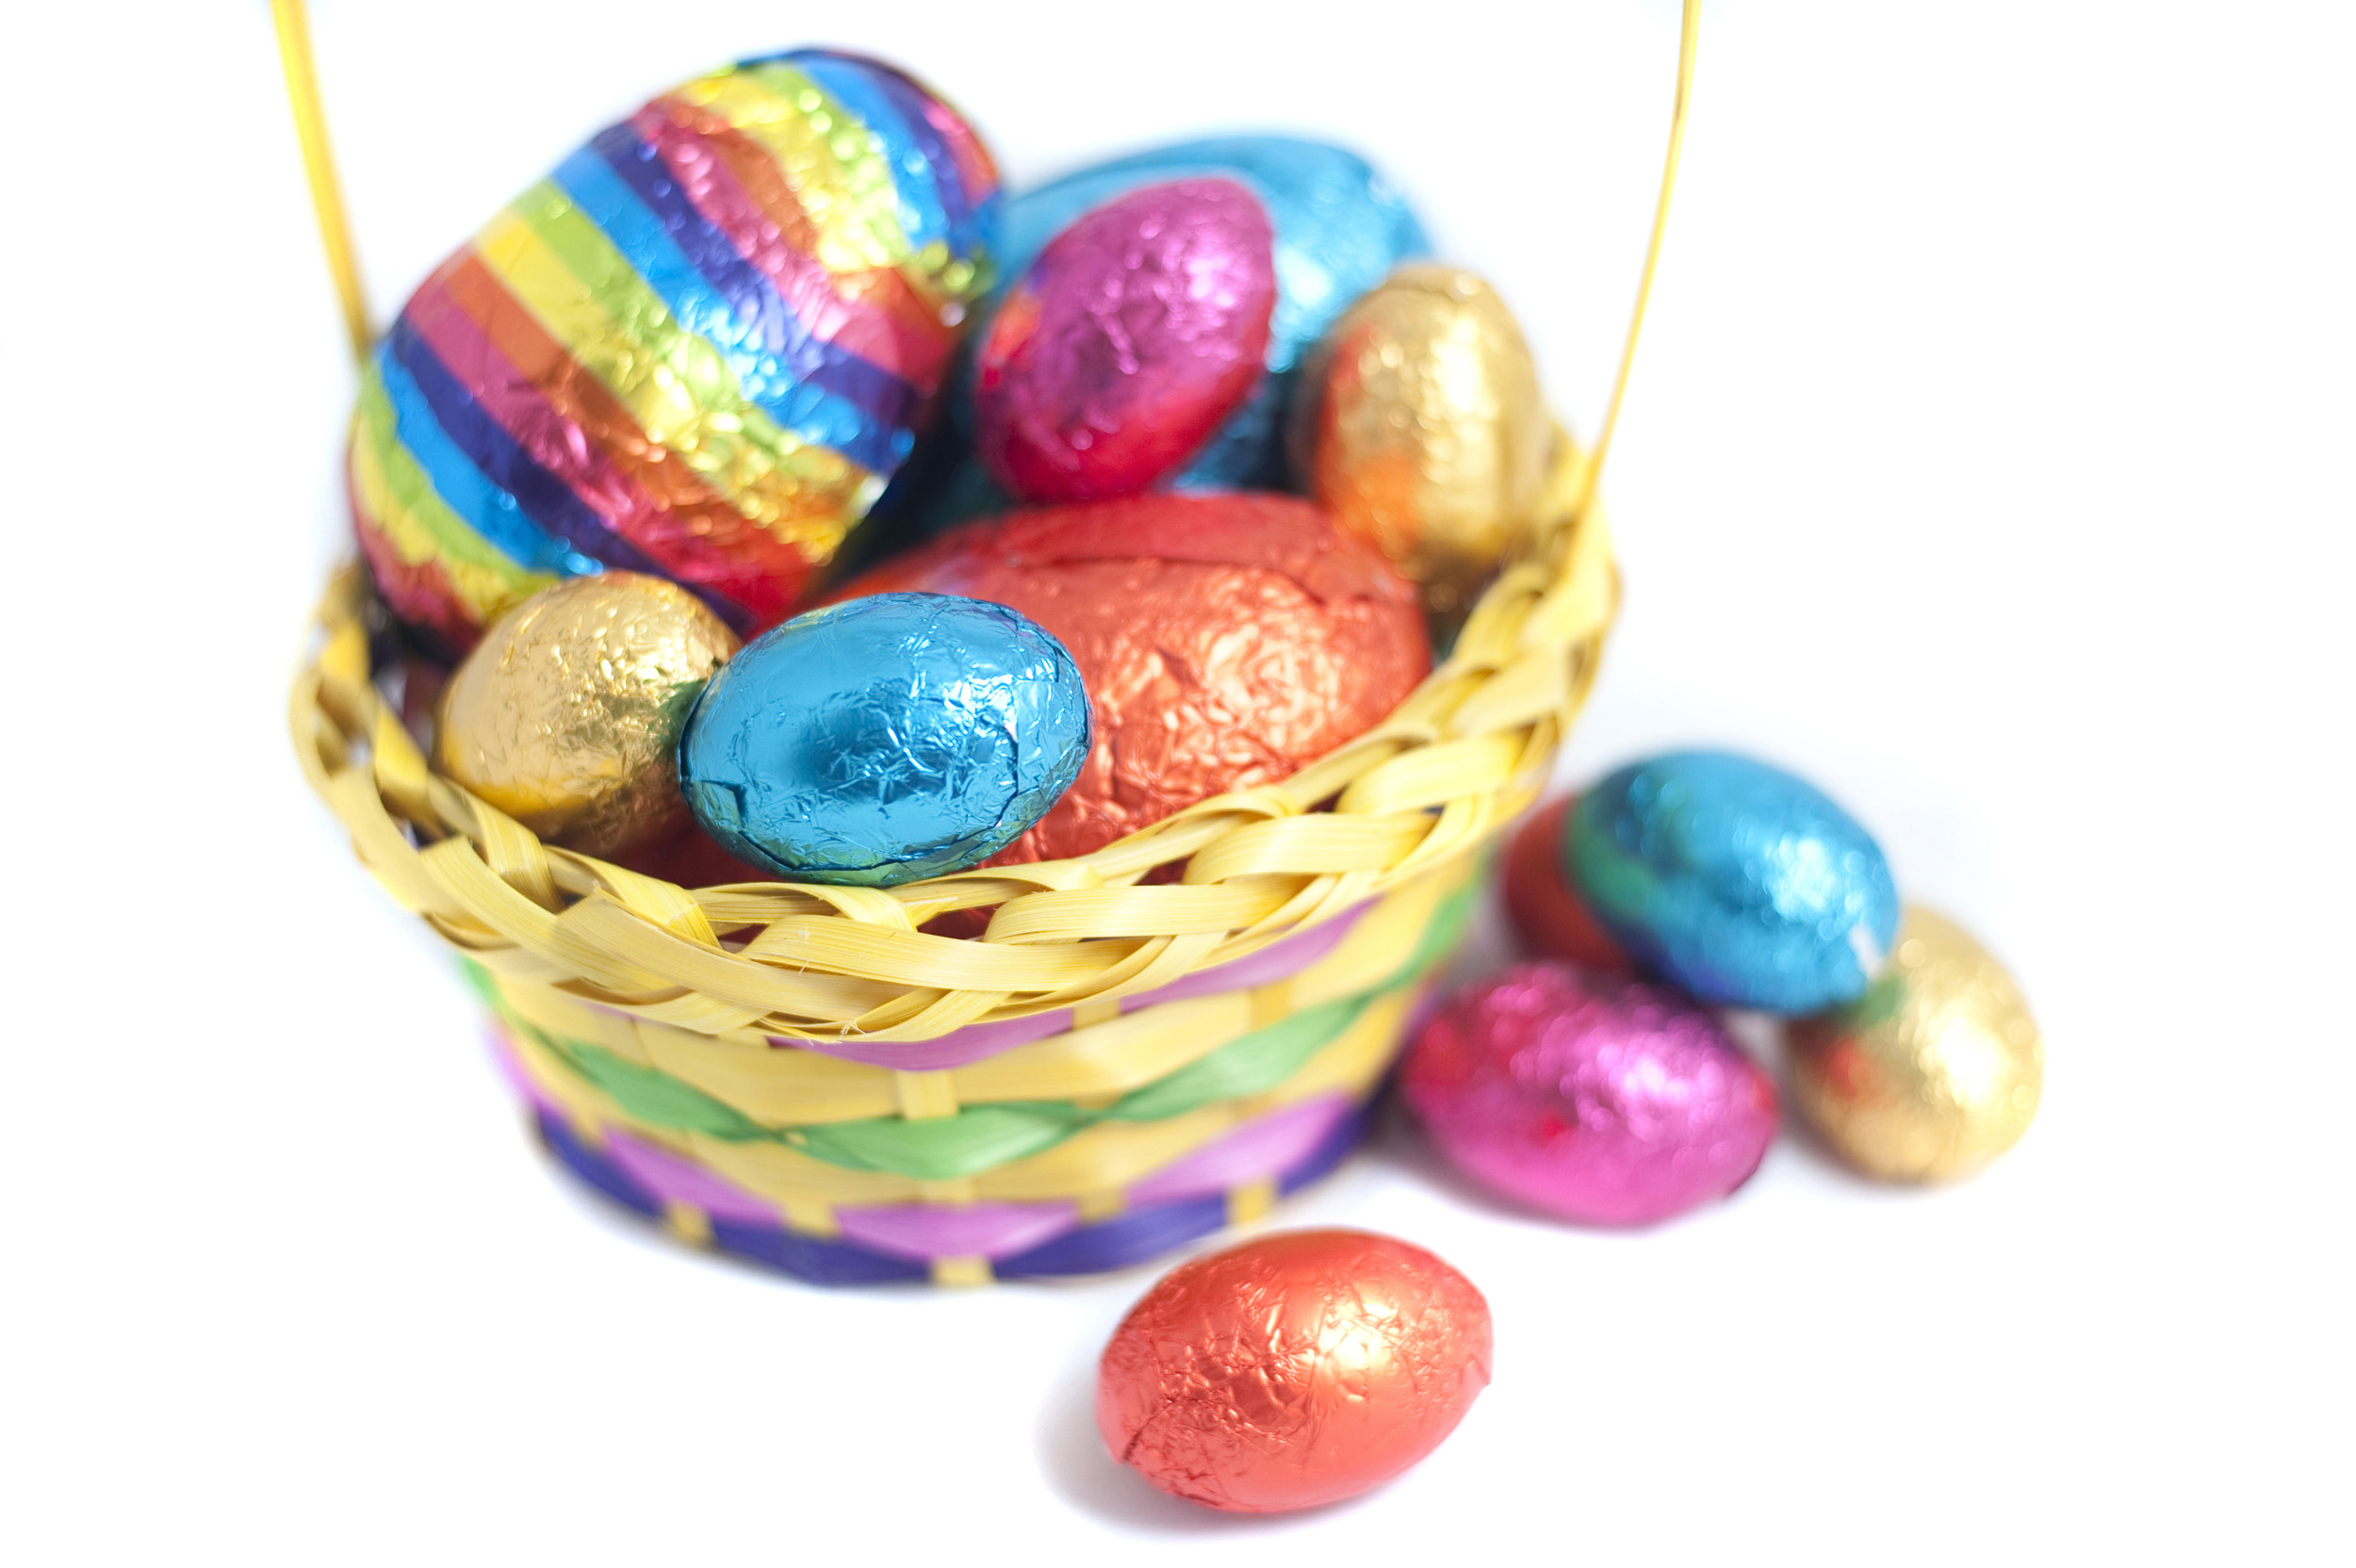 colorful_easter_basket.jpg - Colourful Easter basket filled with multicolour foil wrapped eggs on a white studio background